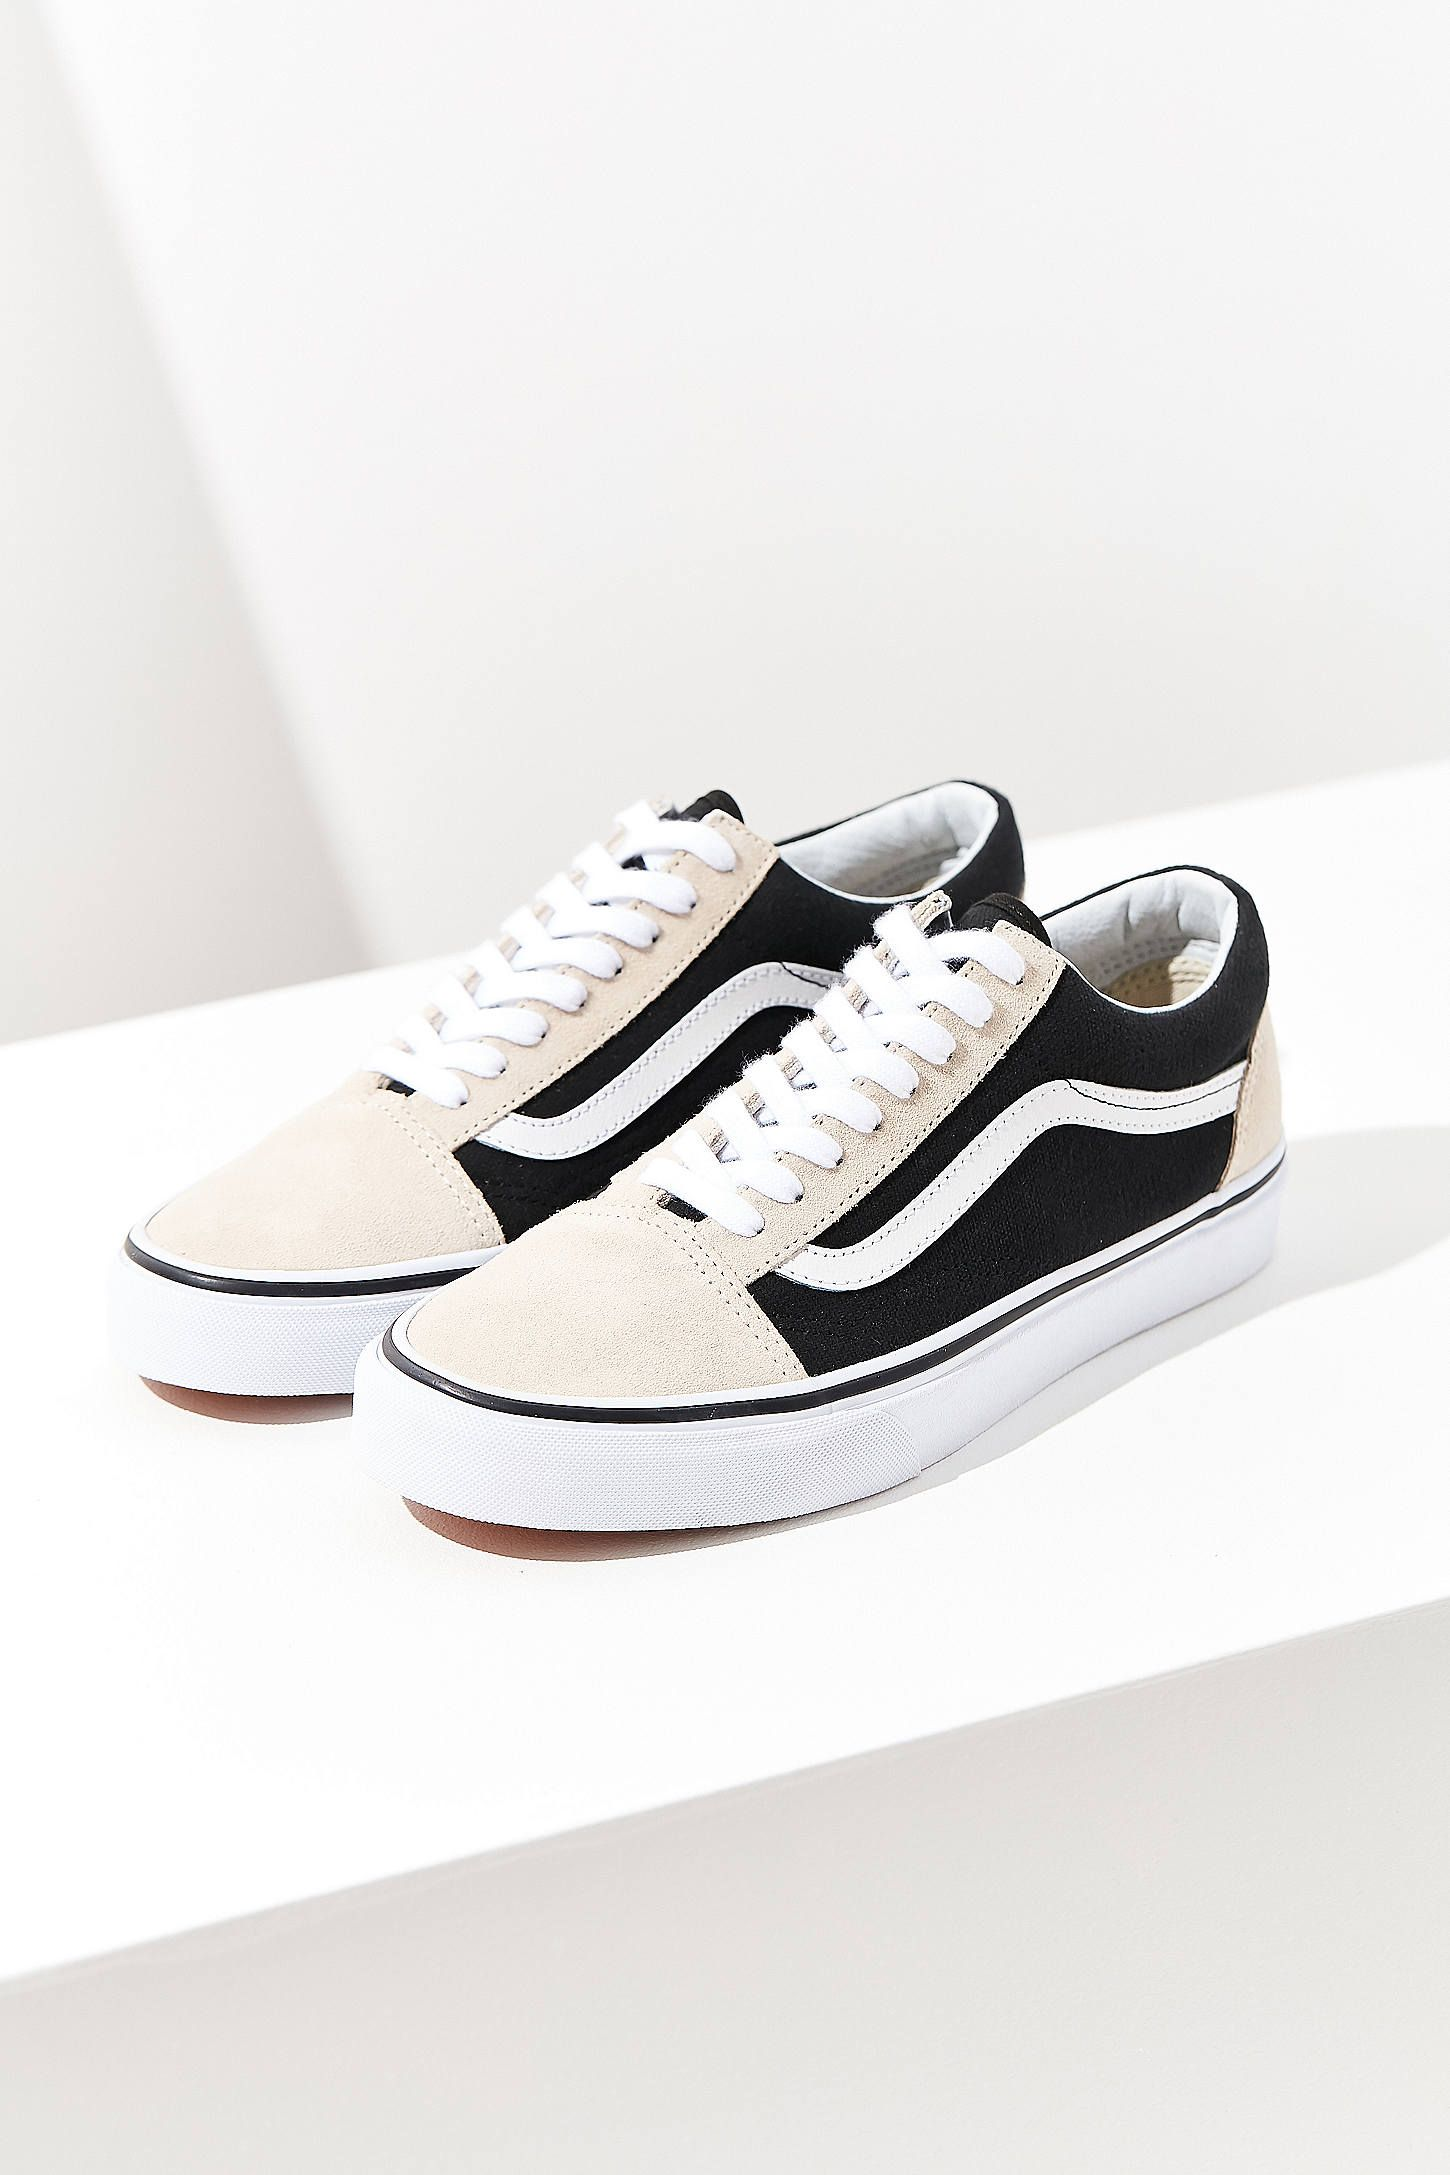 3378d6be44 Shop Vans Classic Old Skool Sneaker at Urban Outfitters today. We carry all  the latest styles